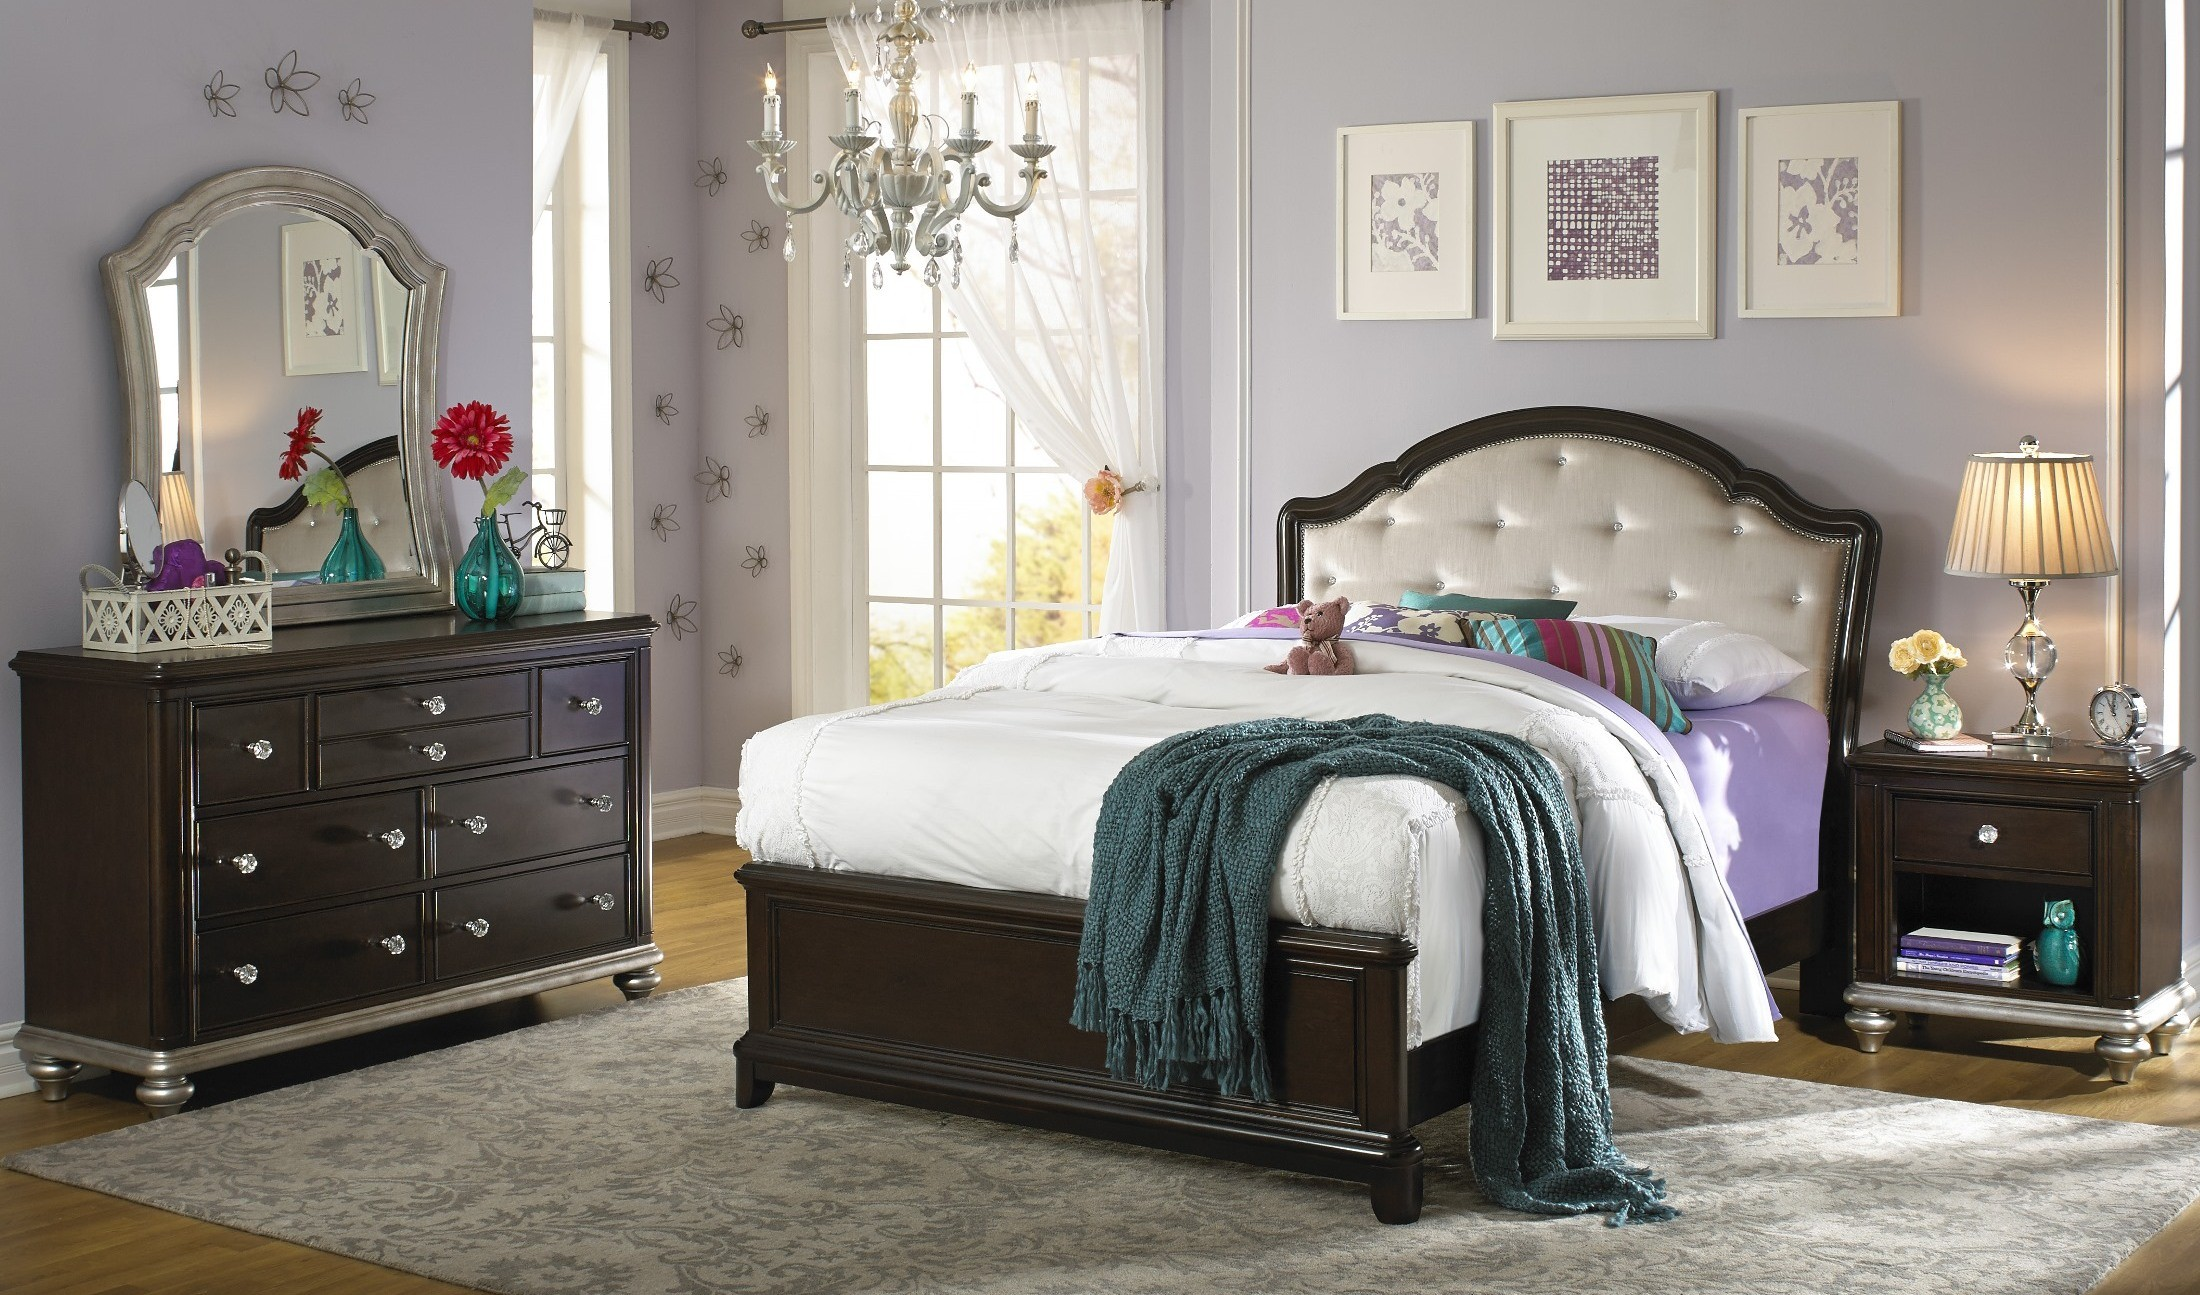 glamour youth black cherry panel bedroom set from samuel 13894 | 8688 532 533 rp 1 1